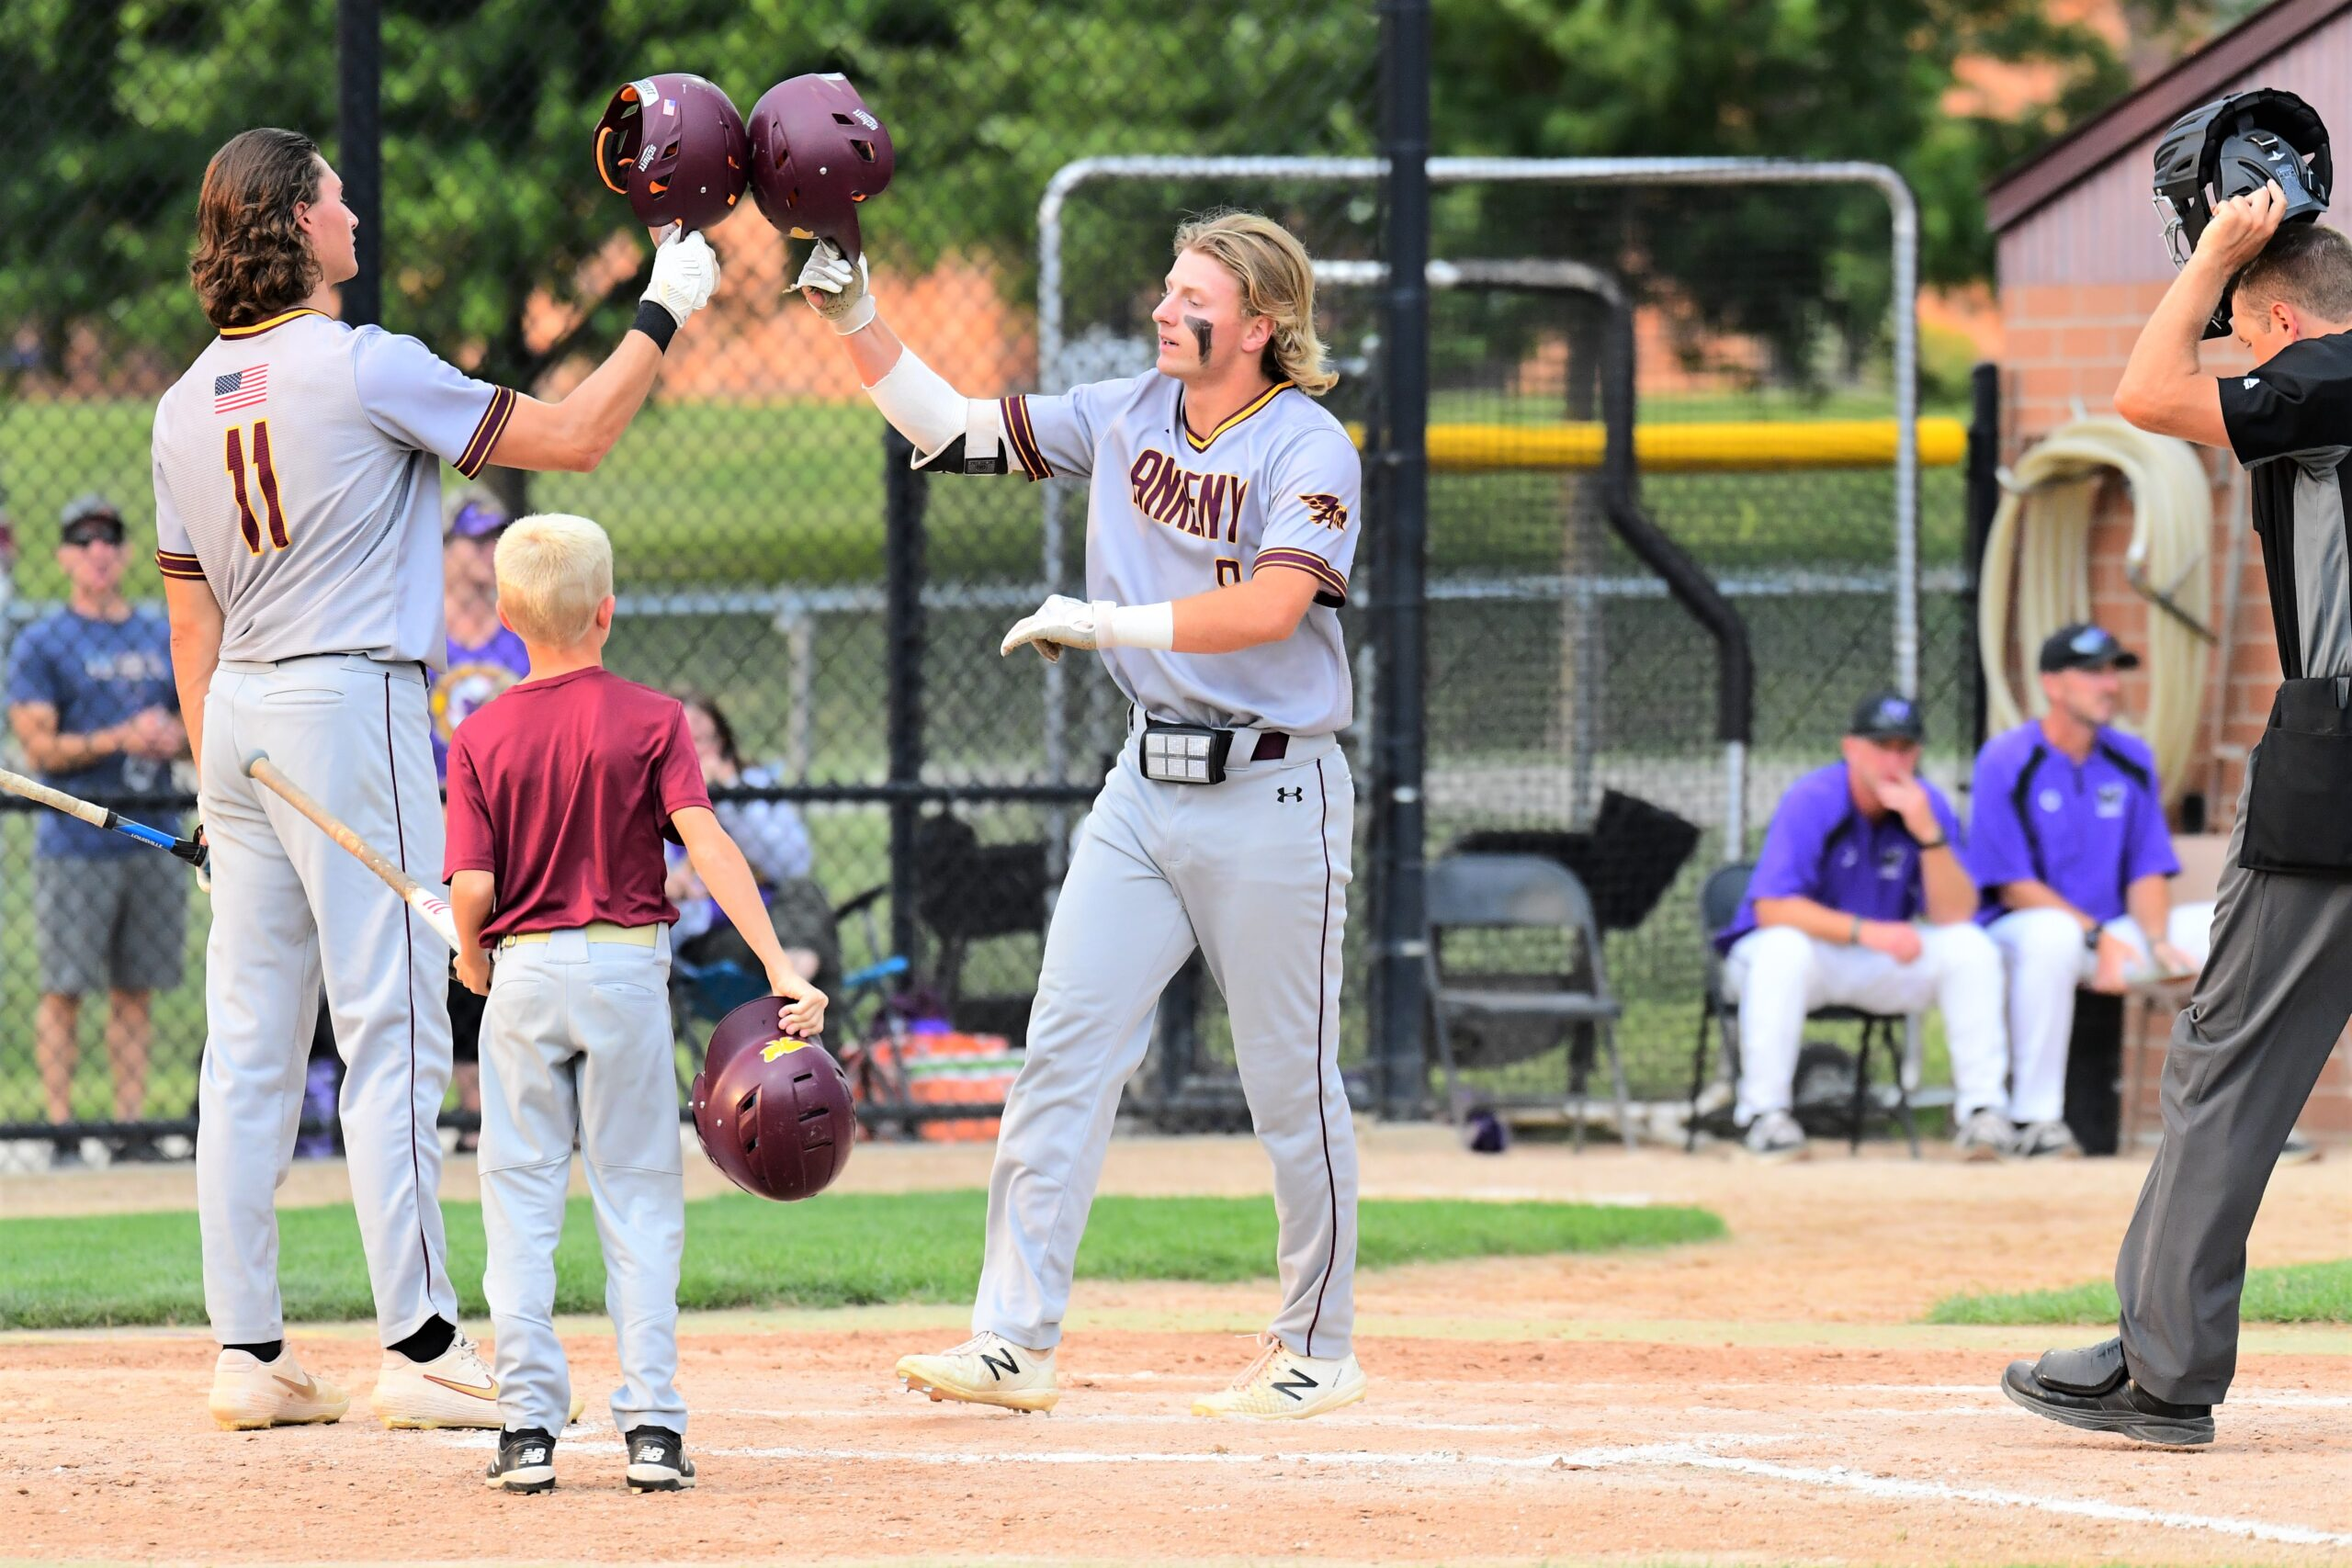 Six Ankeny players join Centennial duo on CIML Iowa Conference first team